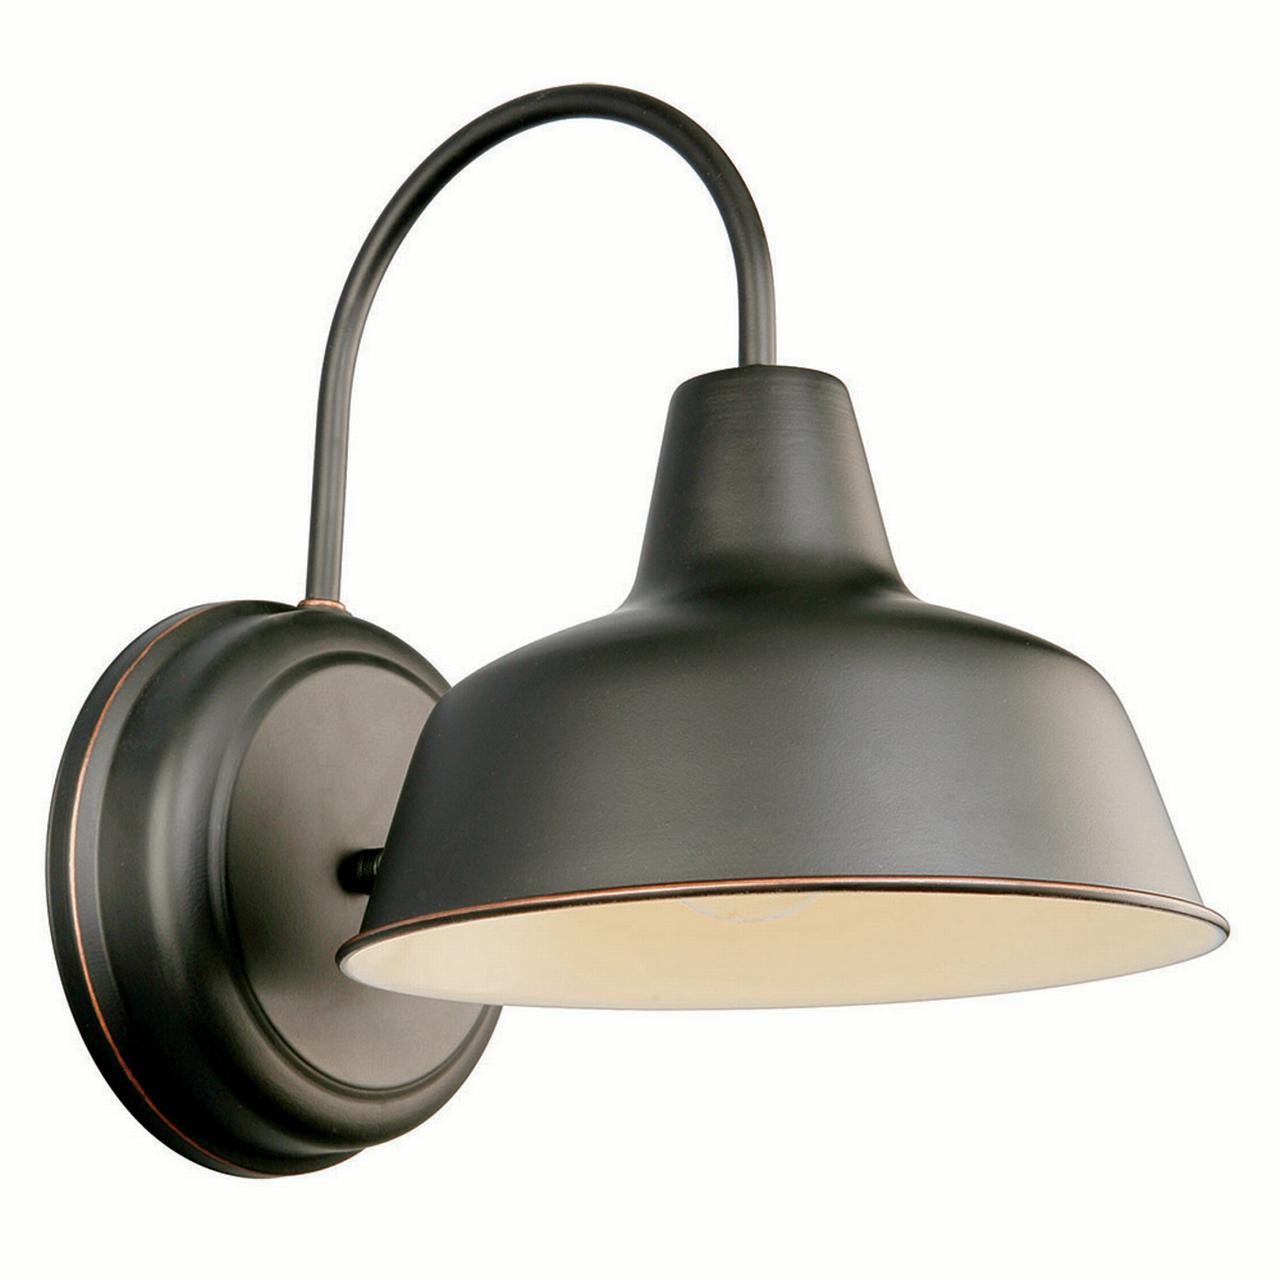 "Design House 519504 Mason 1-Light Indoor/Outdoor Down light 8"", Oil Rubbed Bronze"